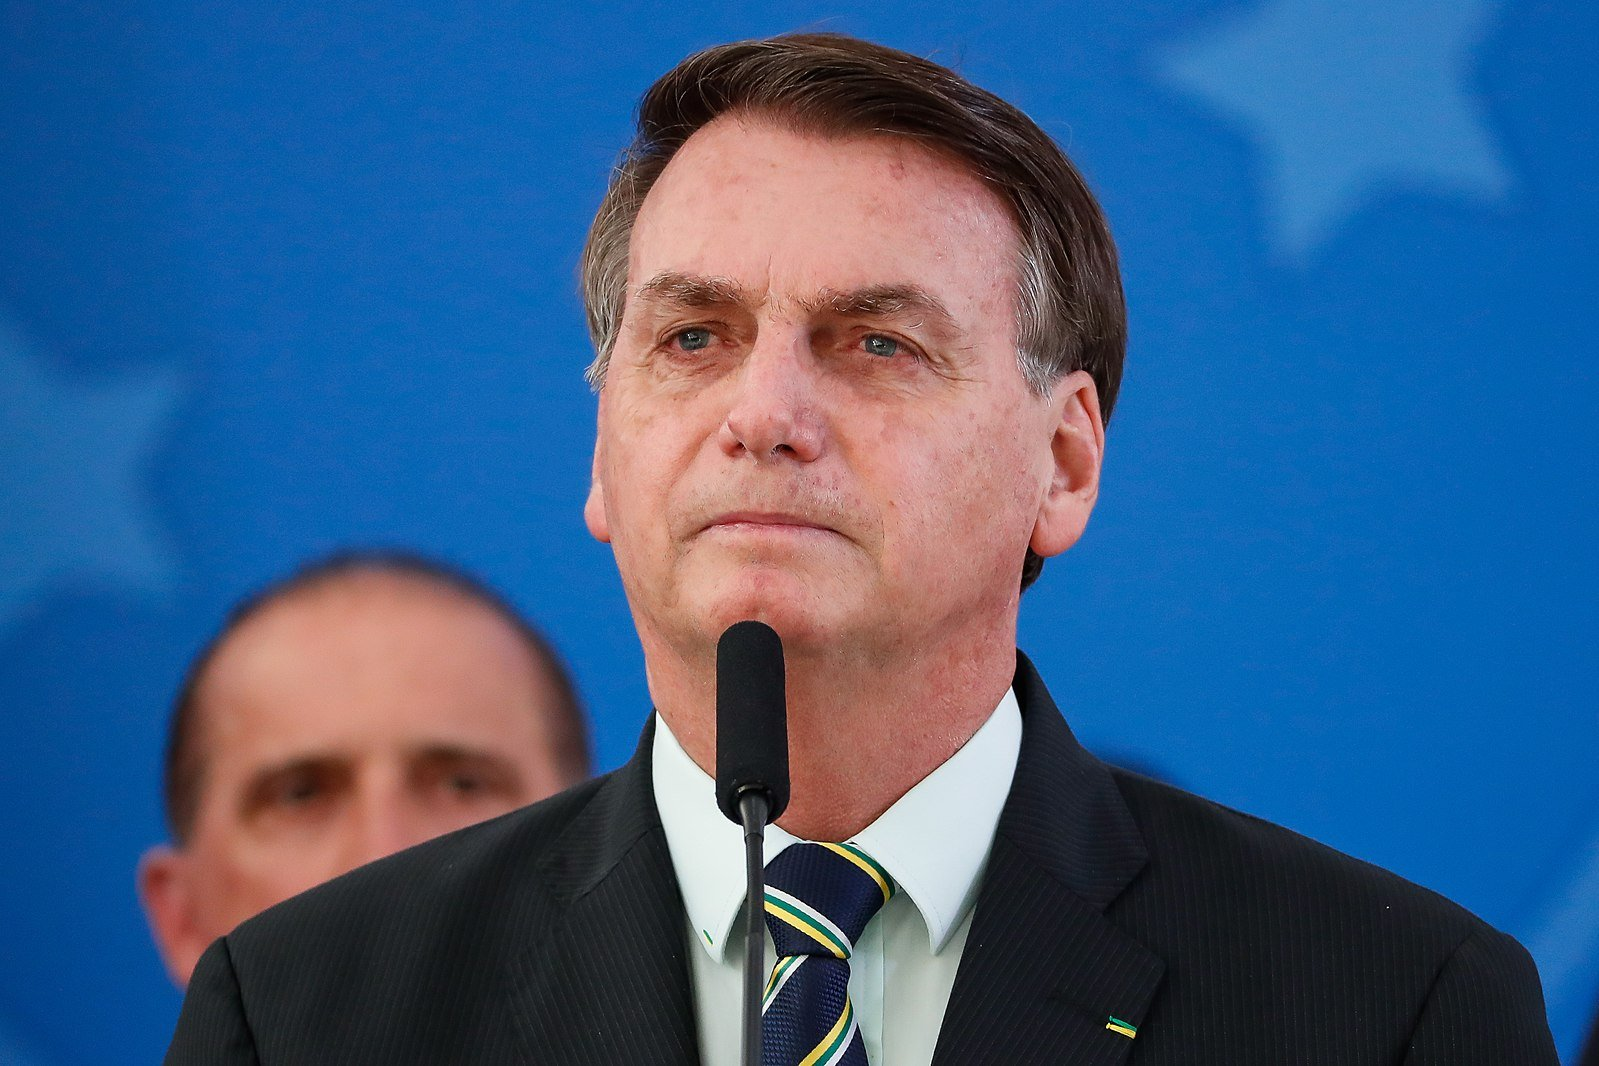 圖為巴西總統波索納羅(Jaif Bolsonaro)。(Palácio do Planalto,Wikipedia Commons)